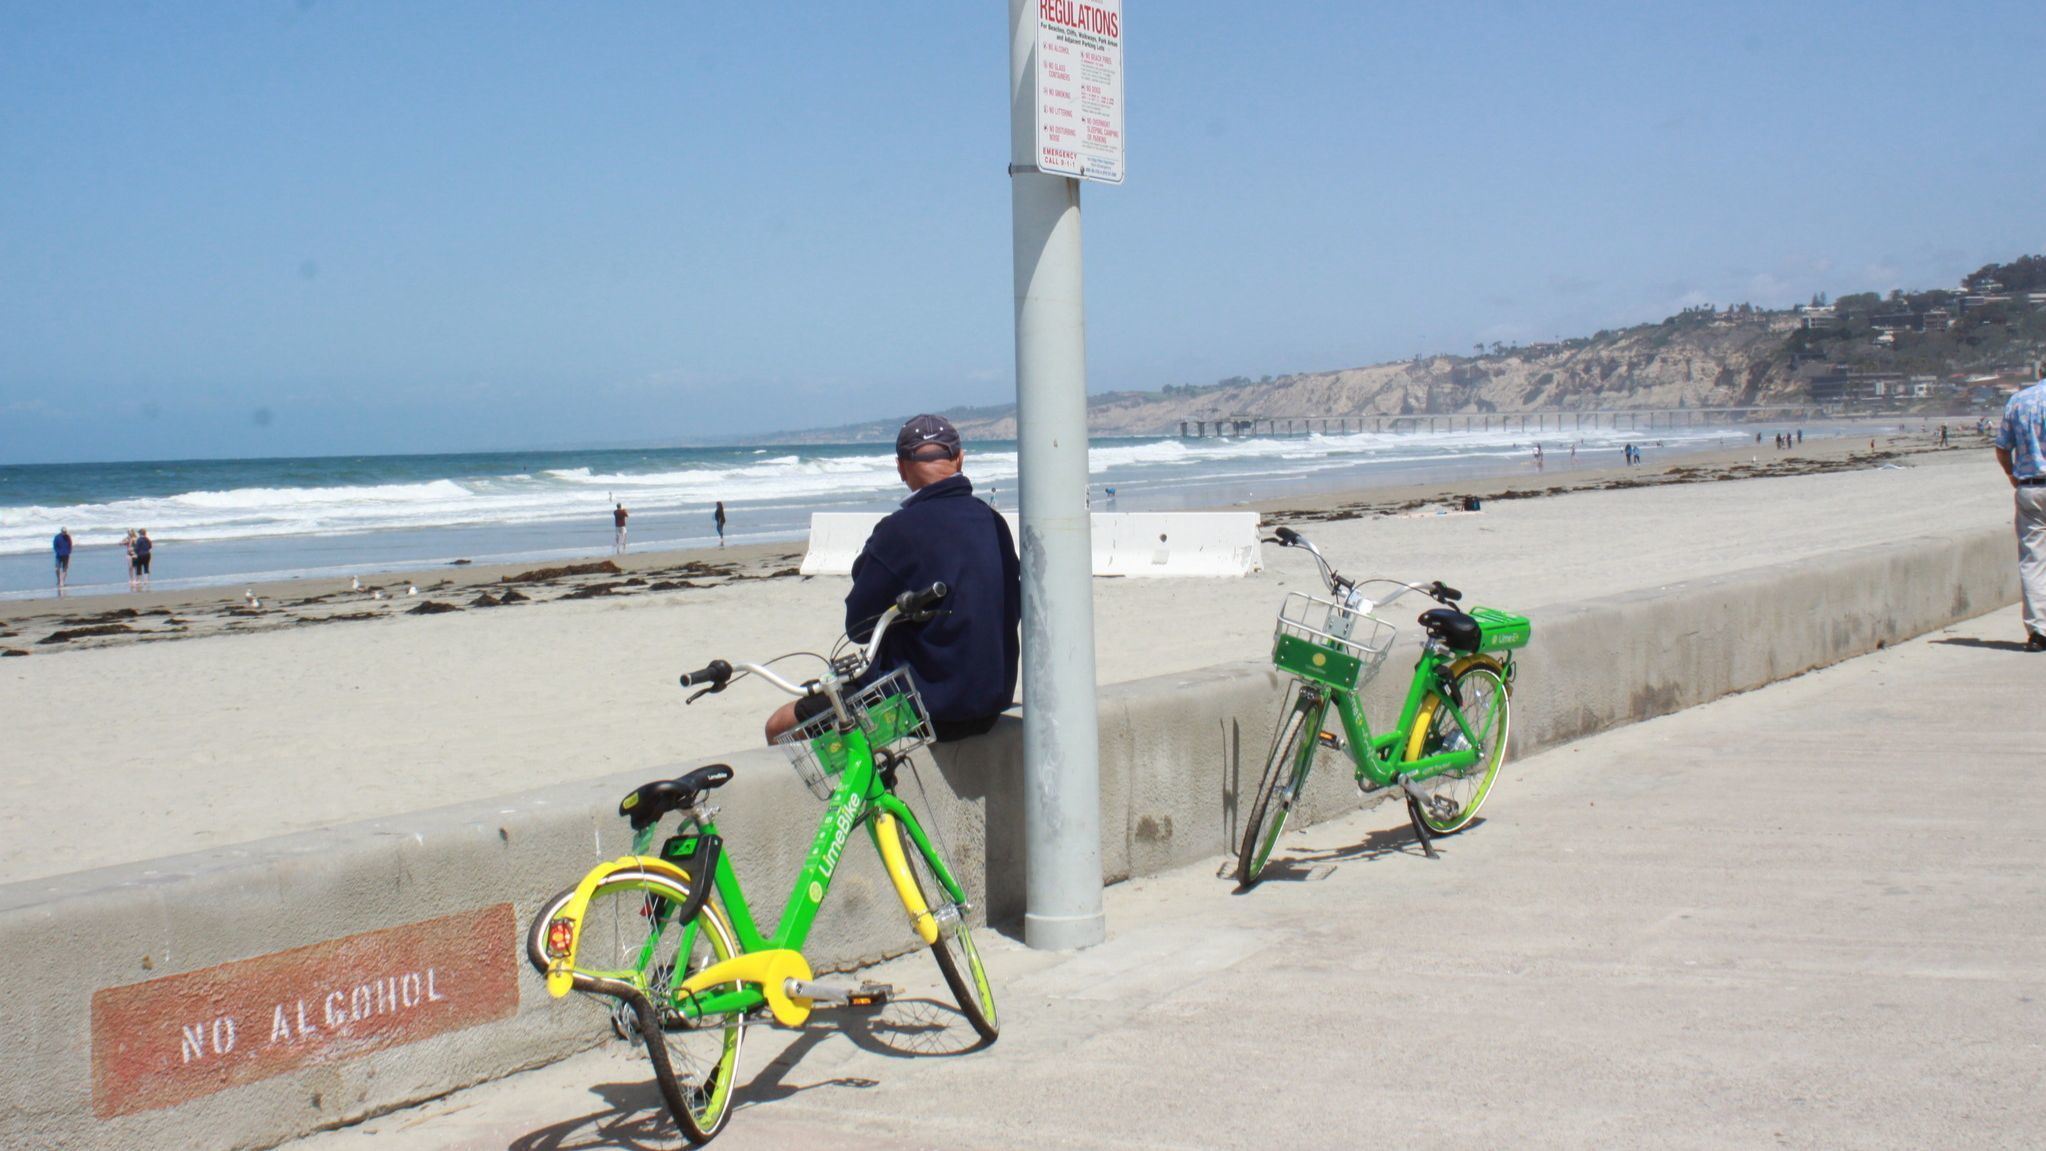 Two LimeBIkes have sat on the La Jolla Shores boardwalk, one with a damaged tire, for several days (according to resident reports).